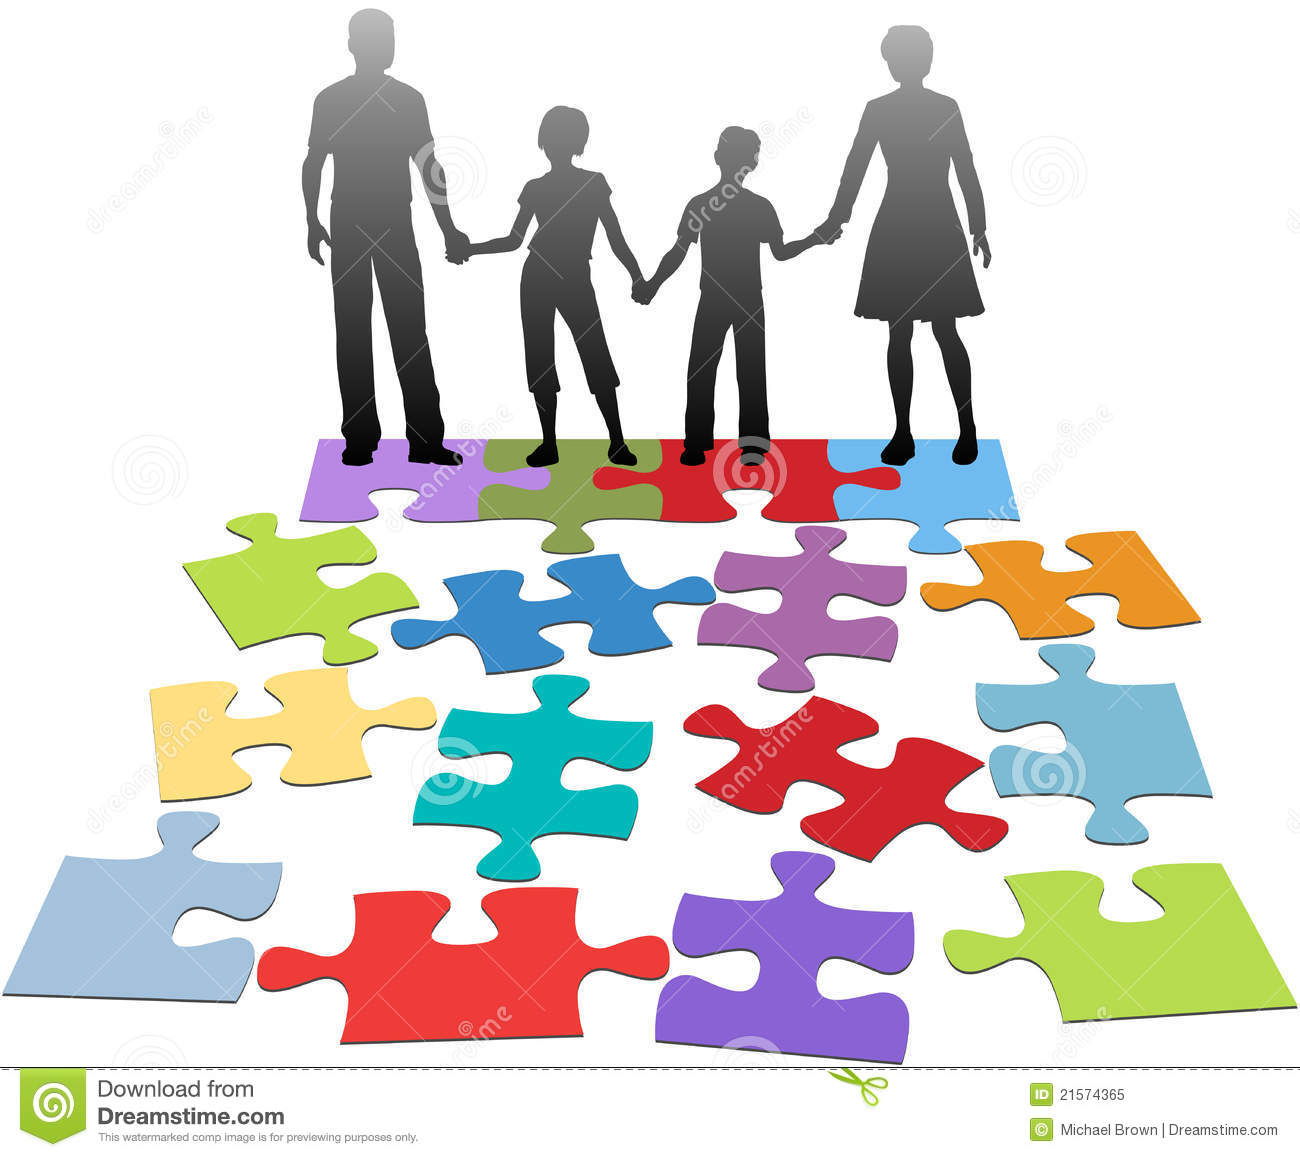 Brains clipart counsellor Clipart Counseling Clipart Family Focus